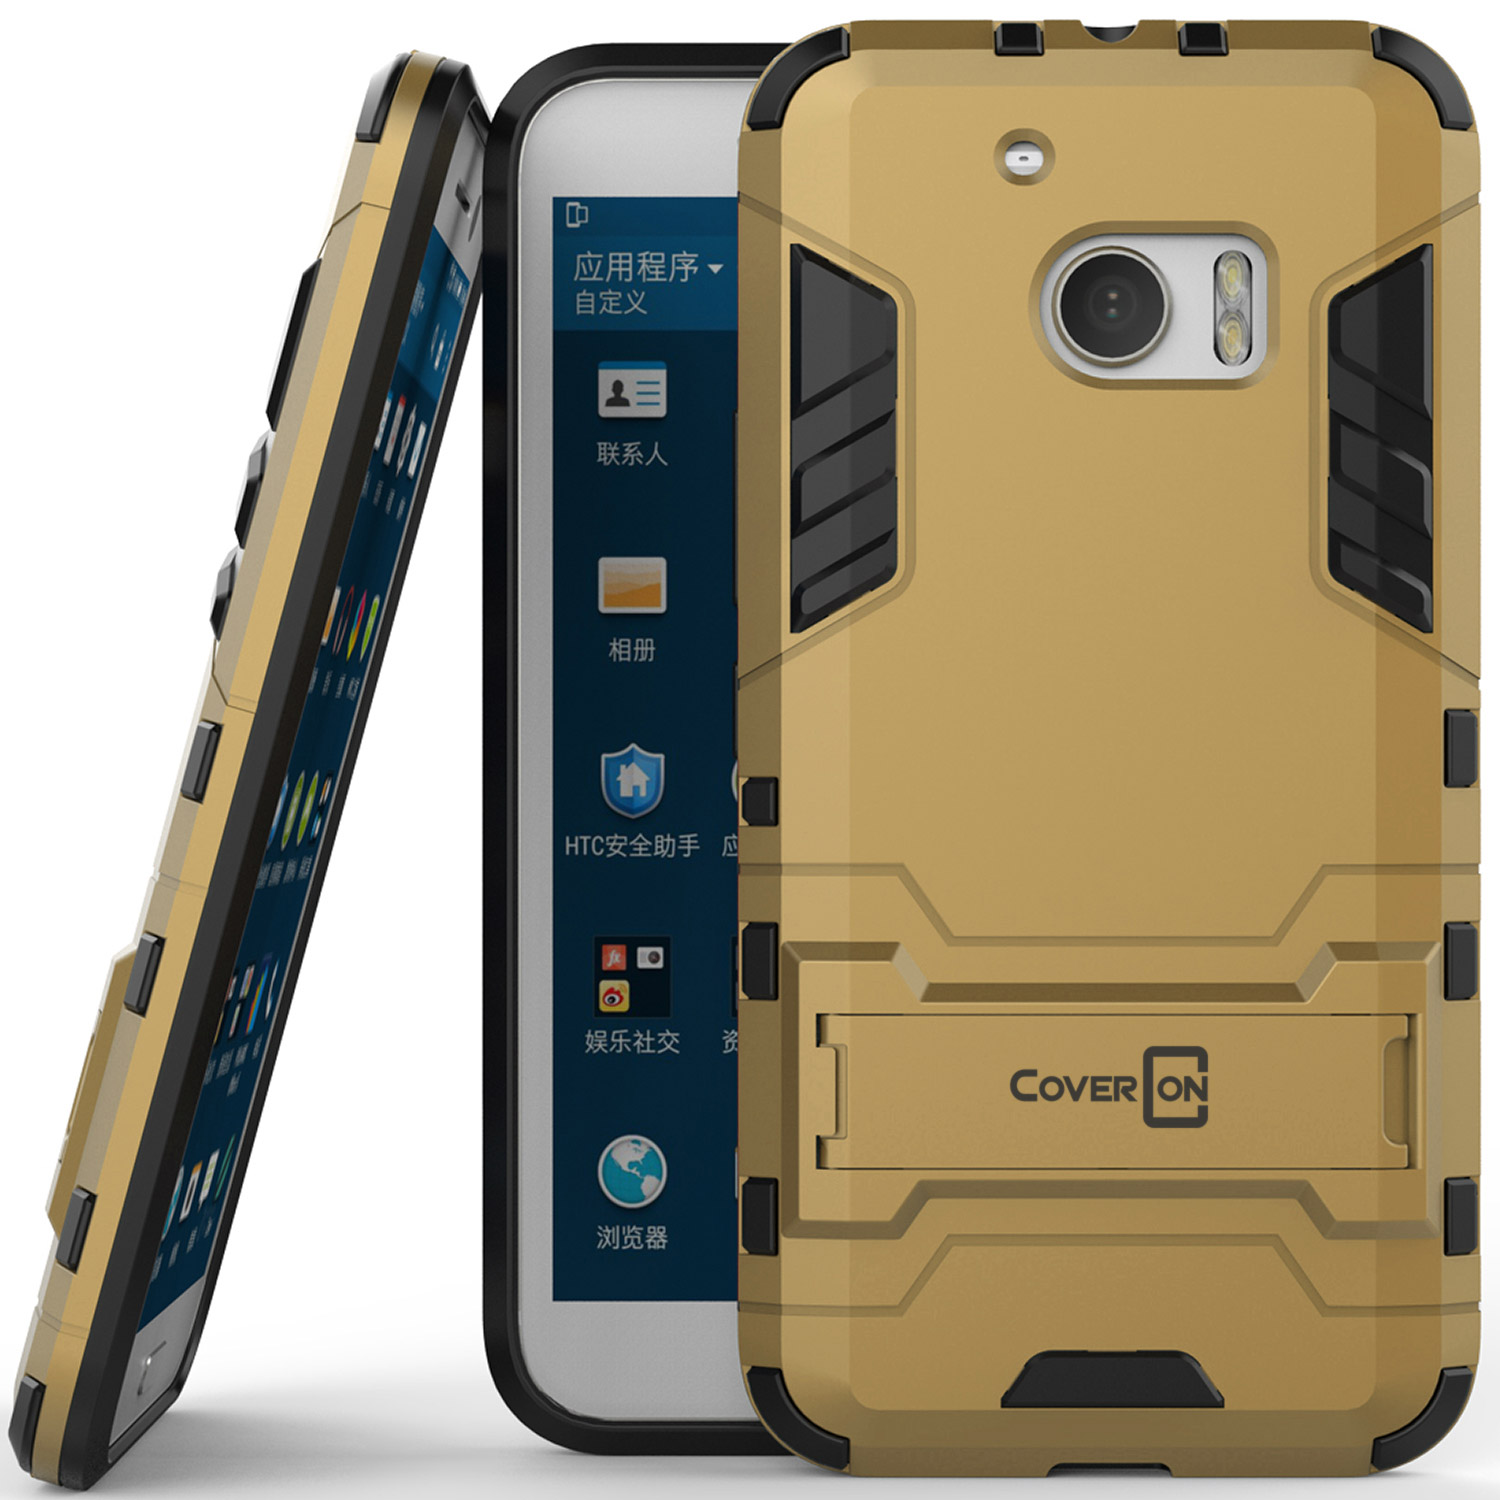 factory authentic 6164f 8facd Details about For HTC 10 Hard Case Gold Kickstand Protective Phone Cover